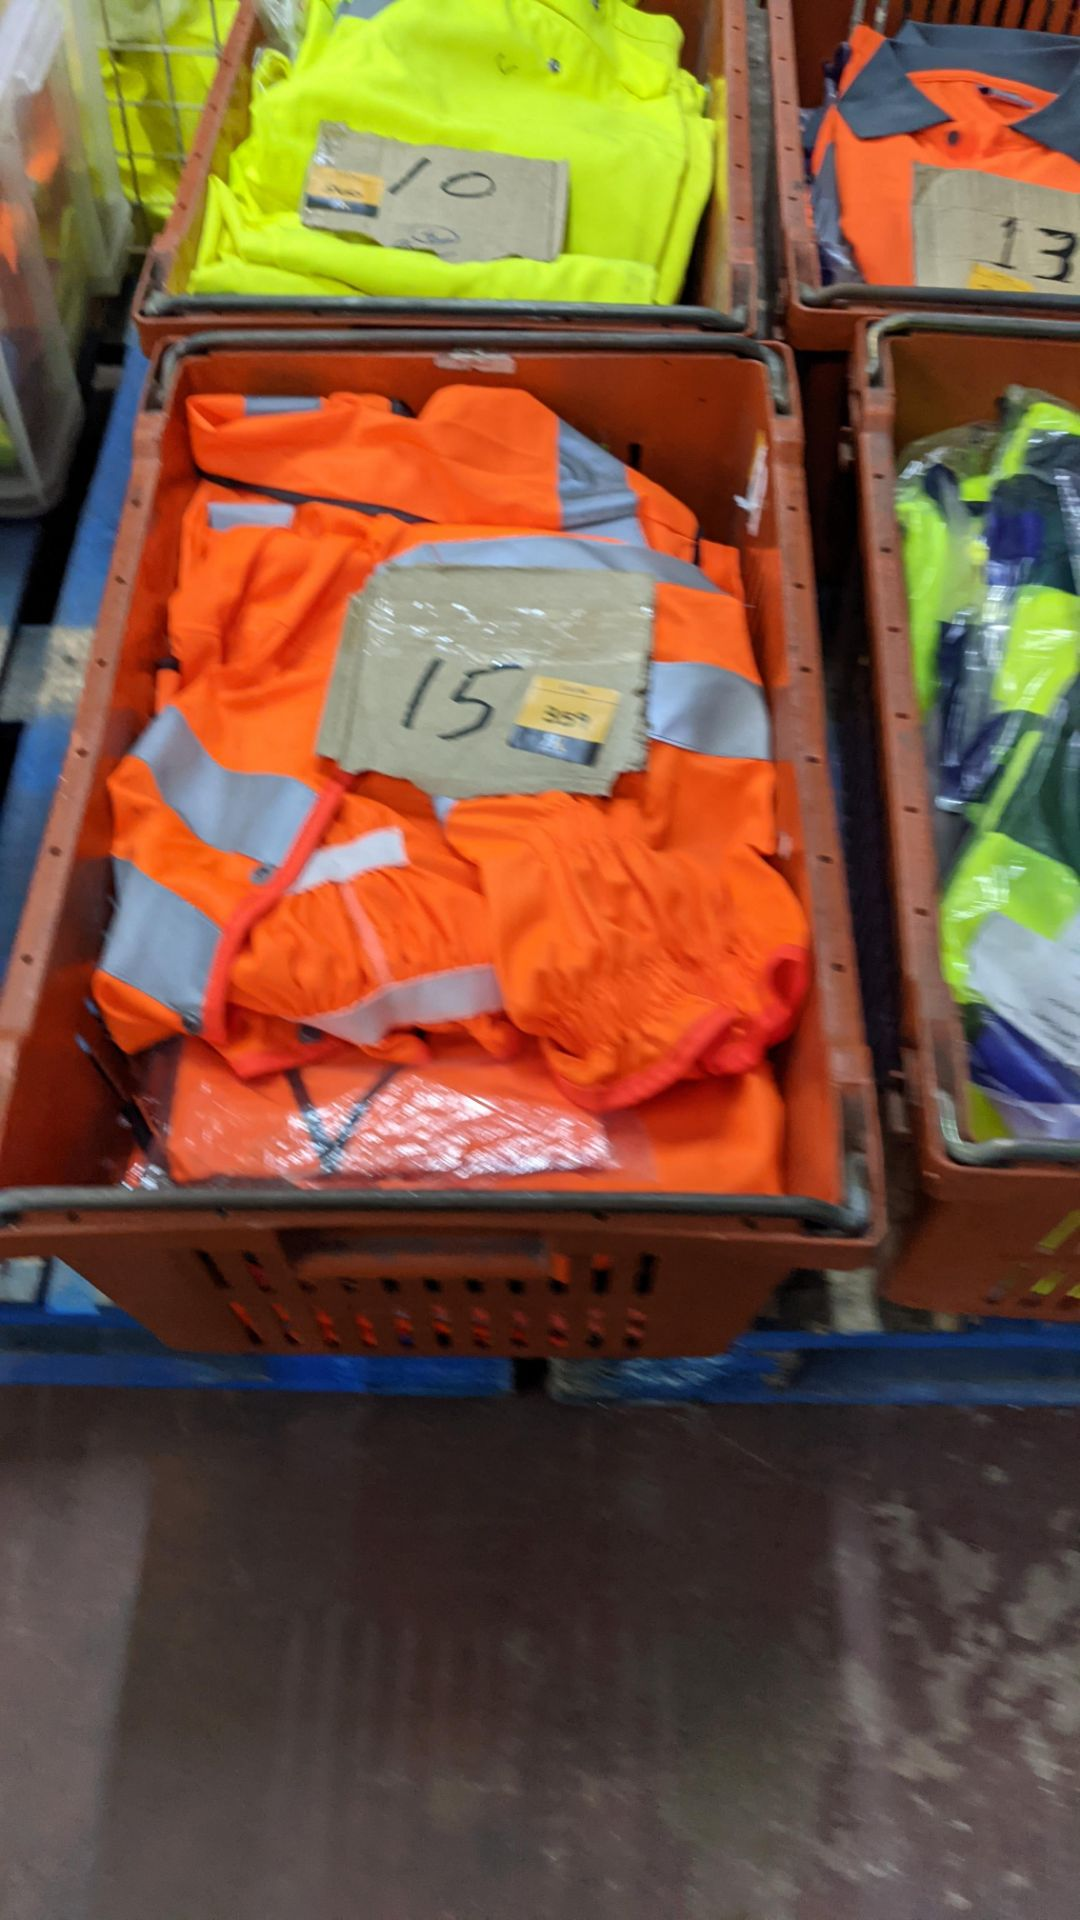 15 off assorted hi-vis garments - Image 3 of 4